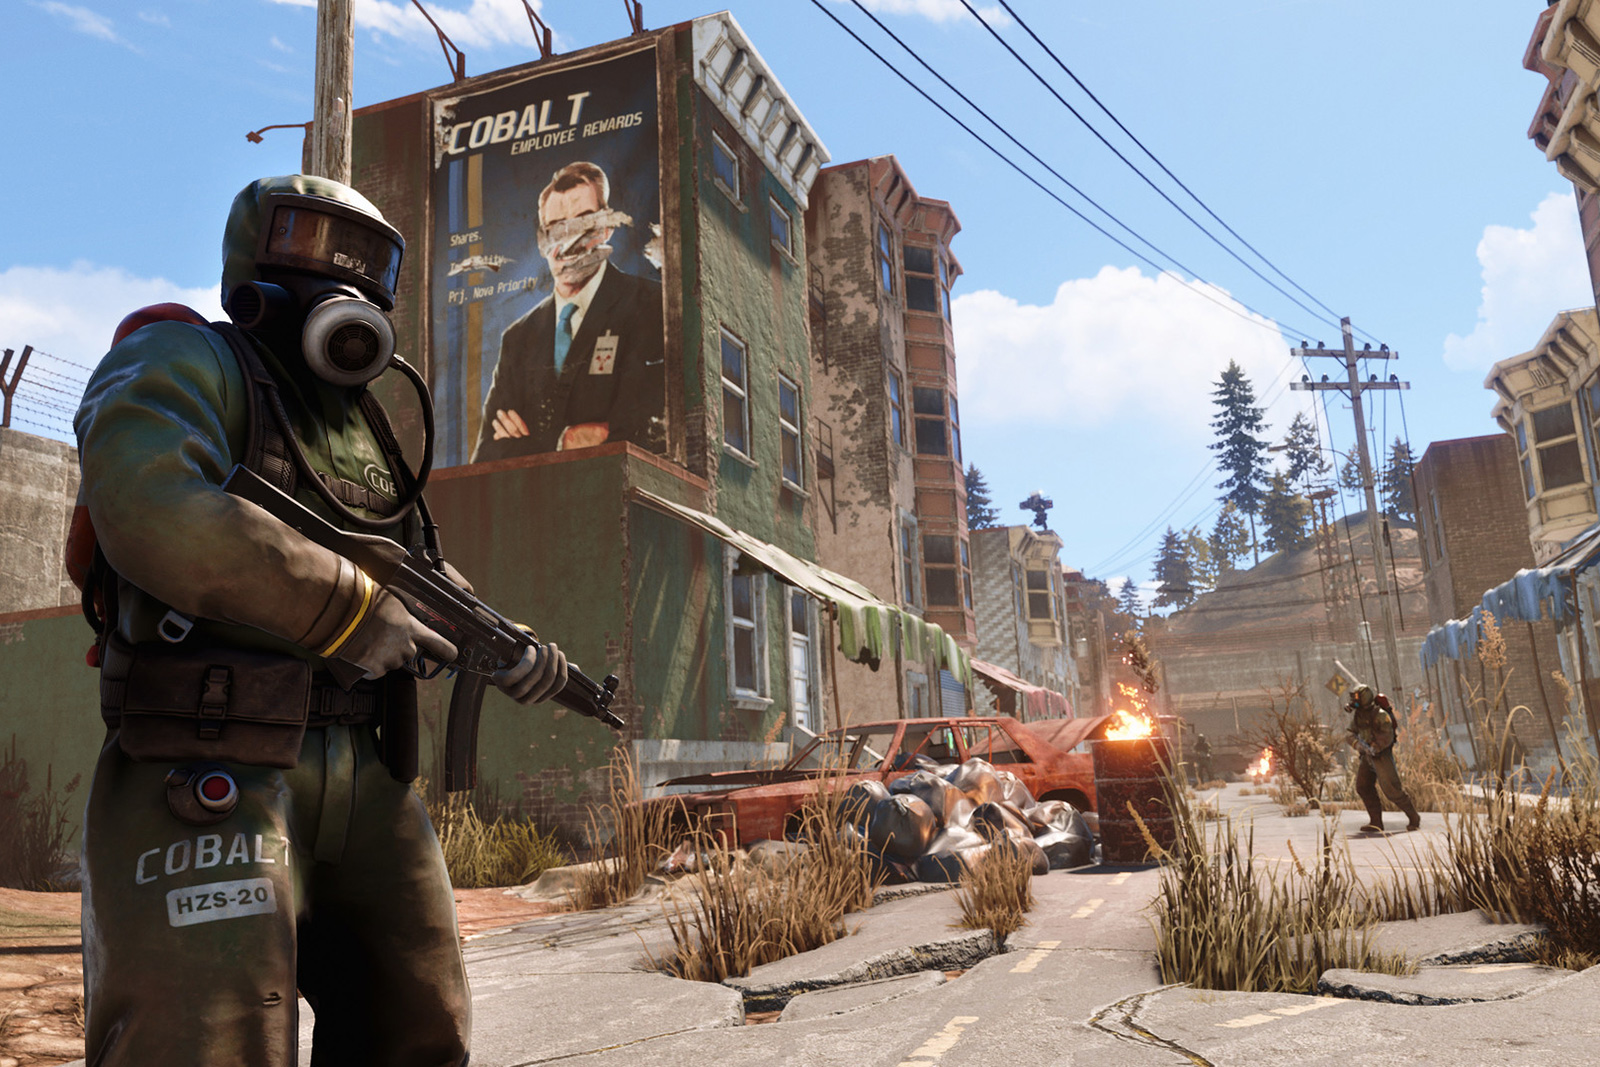 NVIDIA's DLSS upscaling comes to 'Rust' and a wave of Linux games – Yahoo Finance Australia